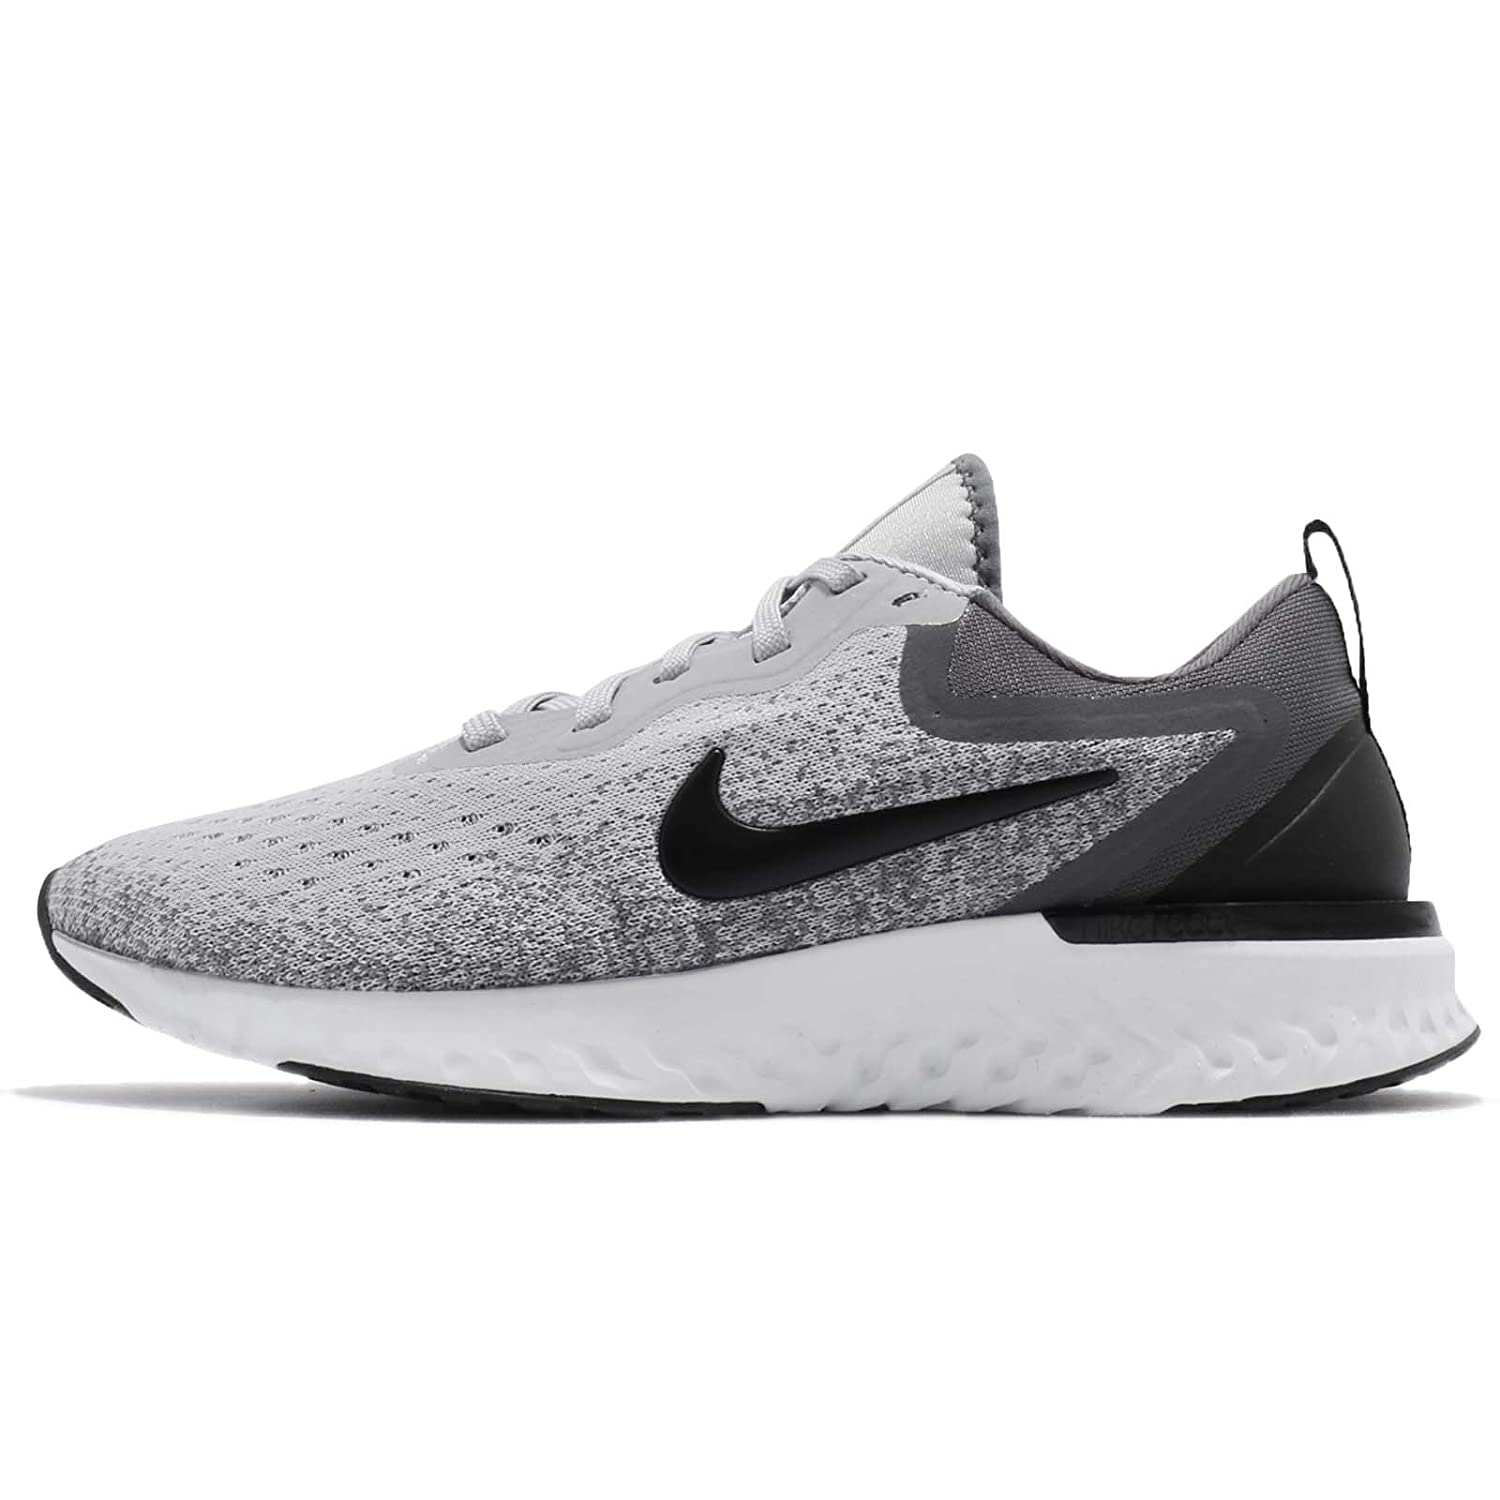 NIKE Men's Odyssey React Running Shoes B078JRLJH2 7-0|Wolf Grey/Black-dark Grey